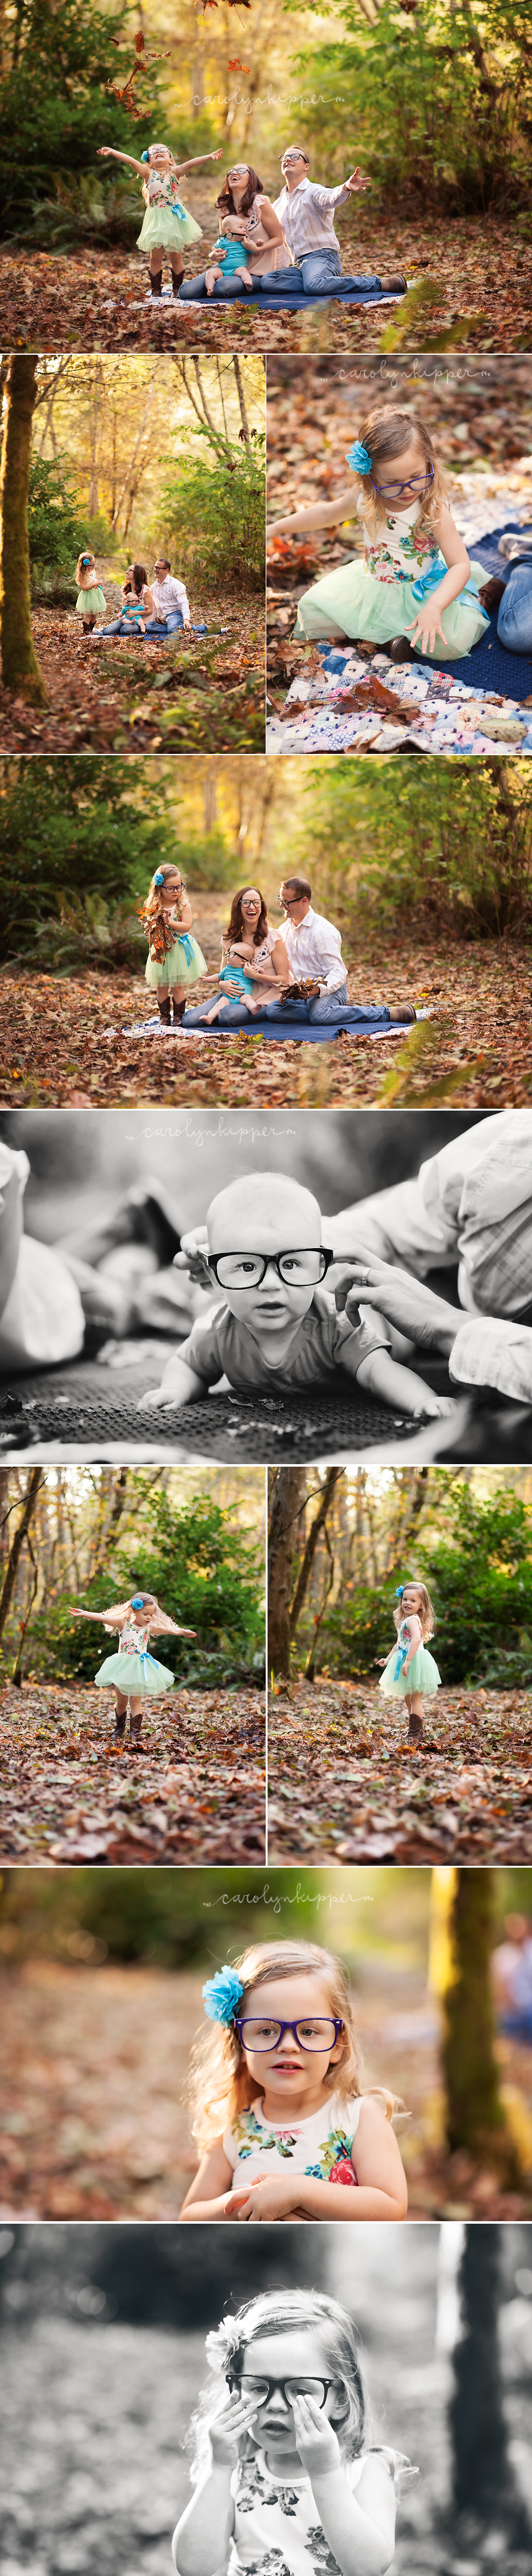 Houston area family photographer